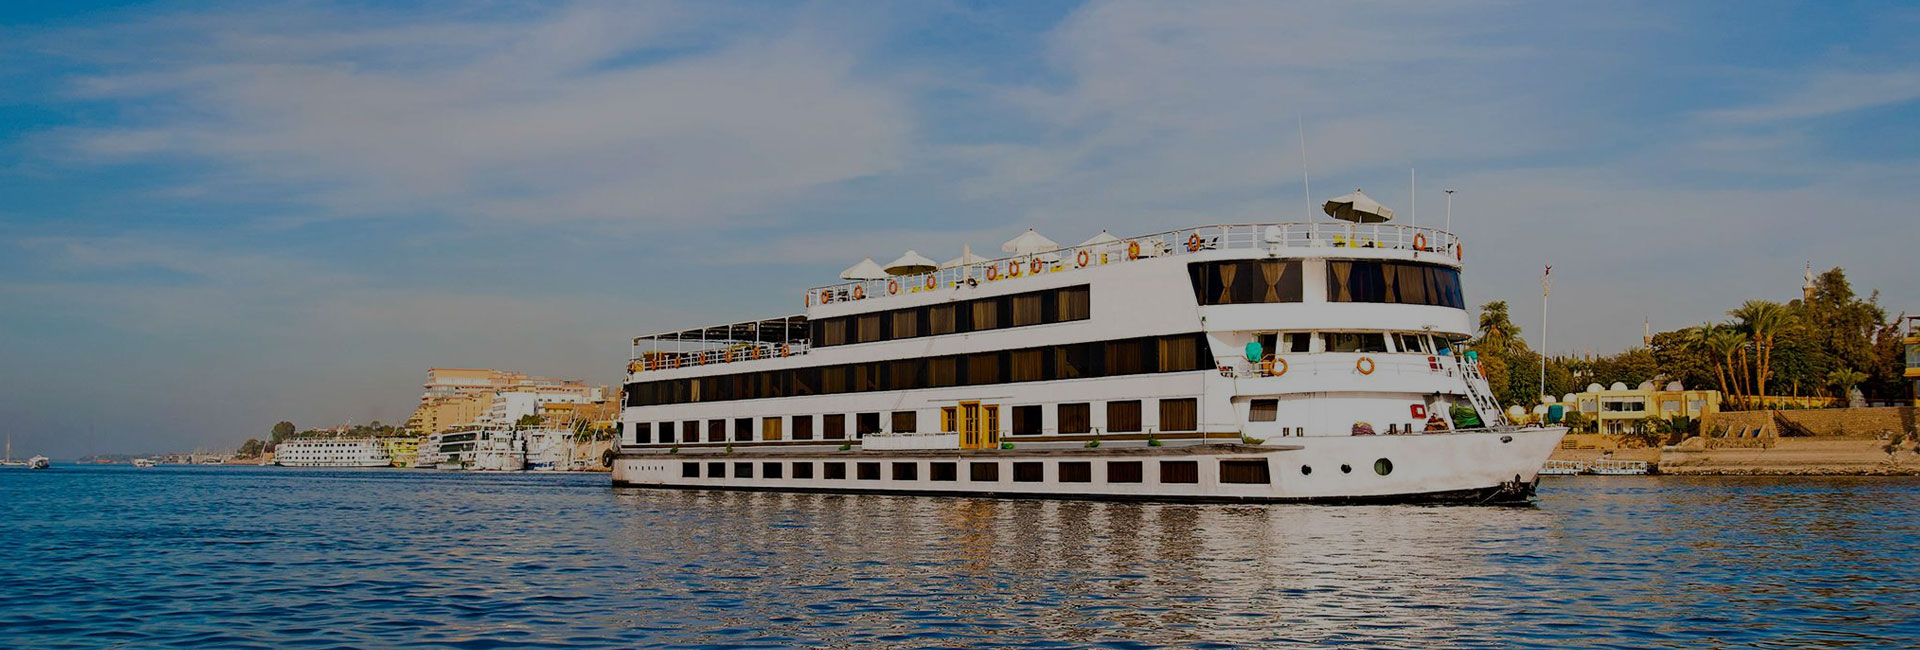 Nile River Cruise from Luxor